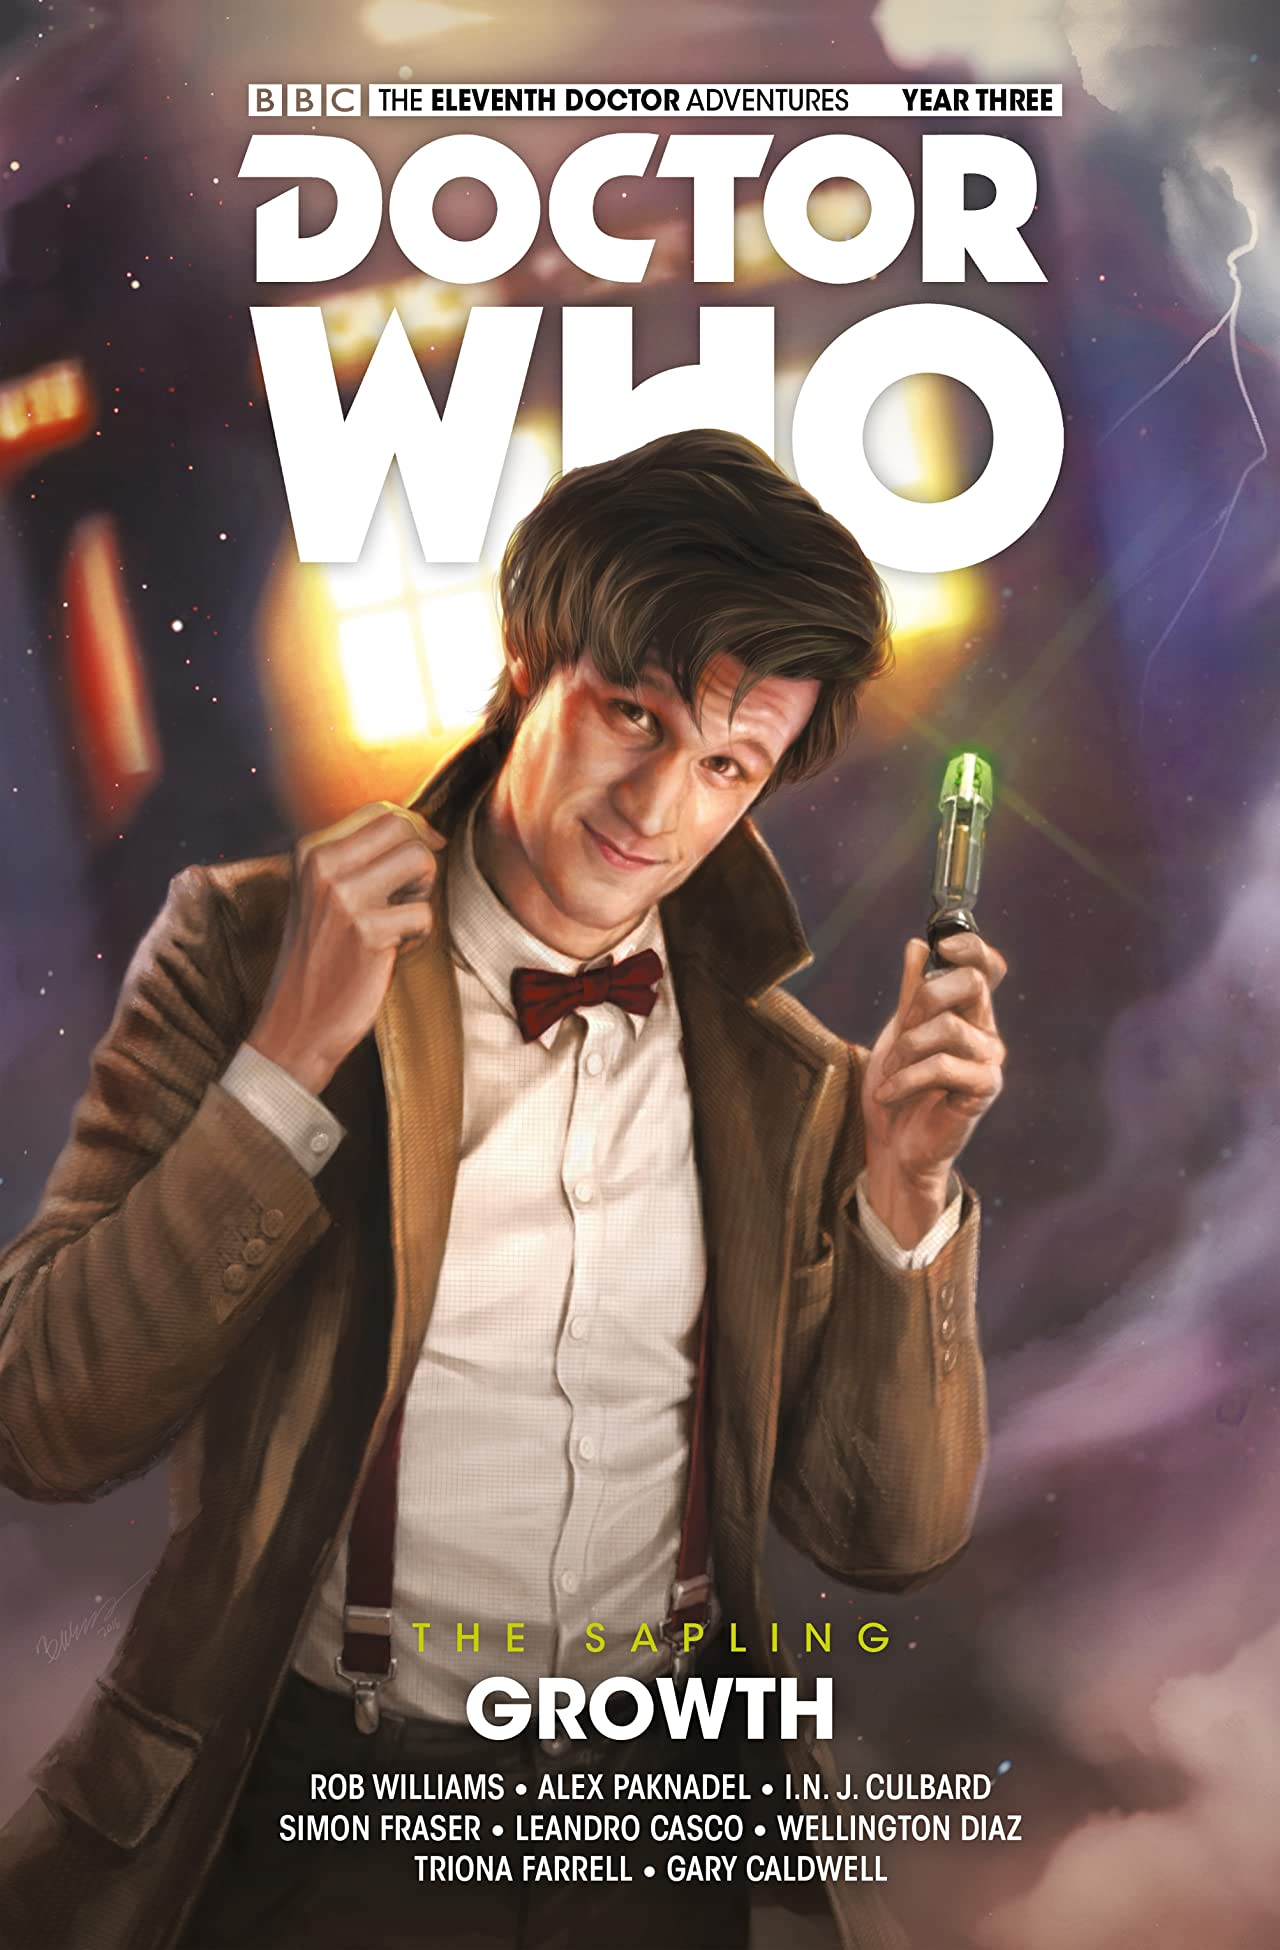 Doctor Who: The Eleventh Doctor: The Sapling Volume 1: Growth